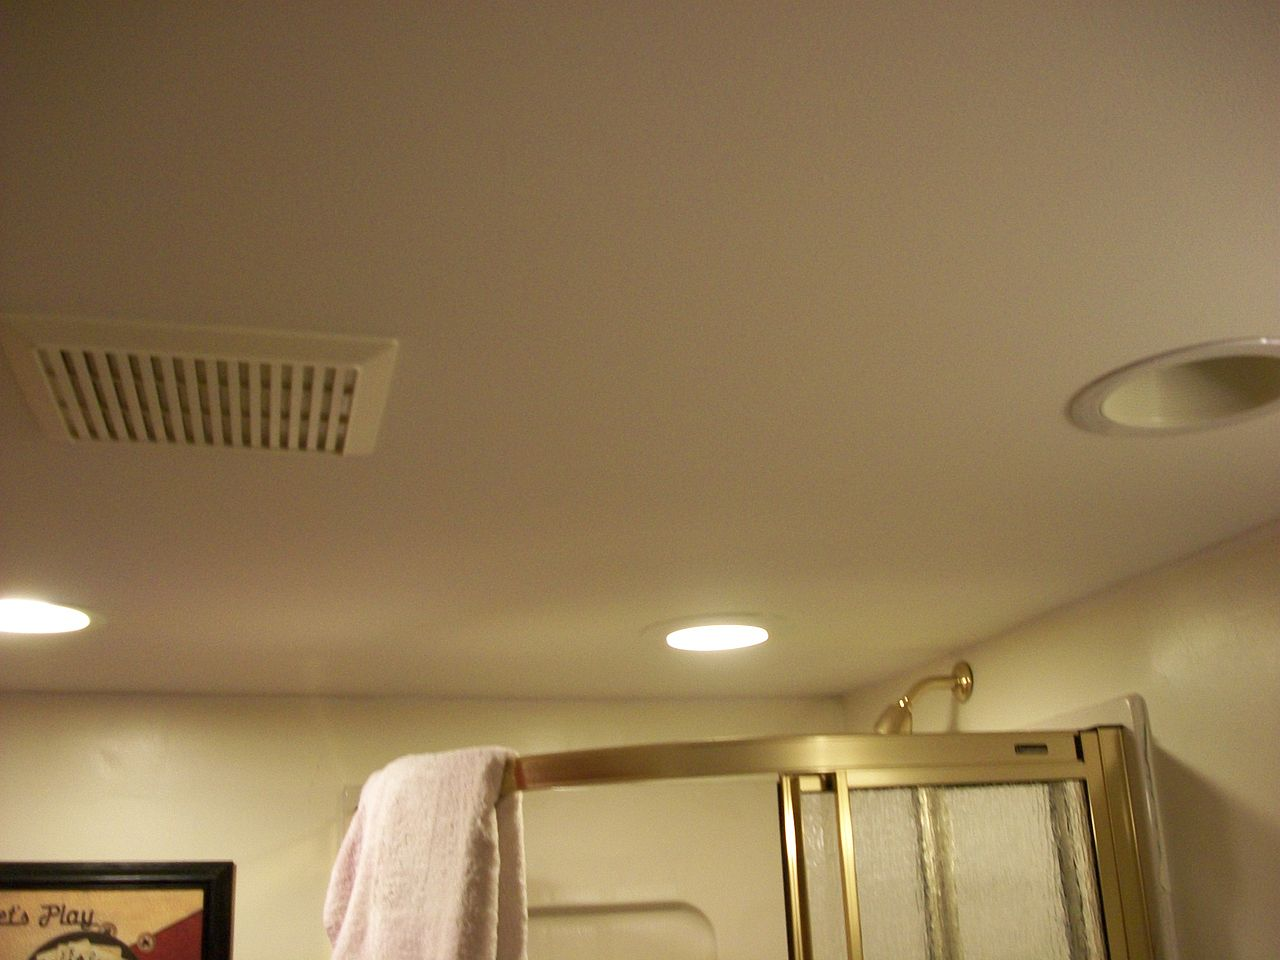 Dining Room Ceilings File Bathroom Ceiling With Vent Jpg Wikimedia Commons